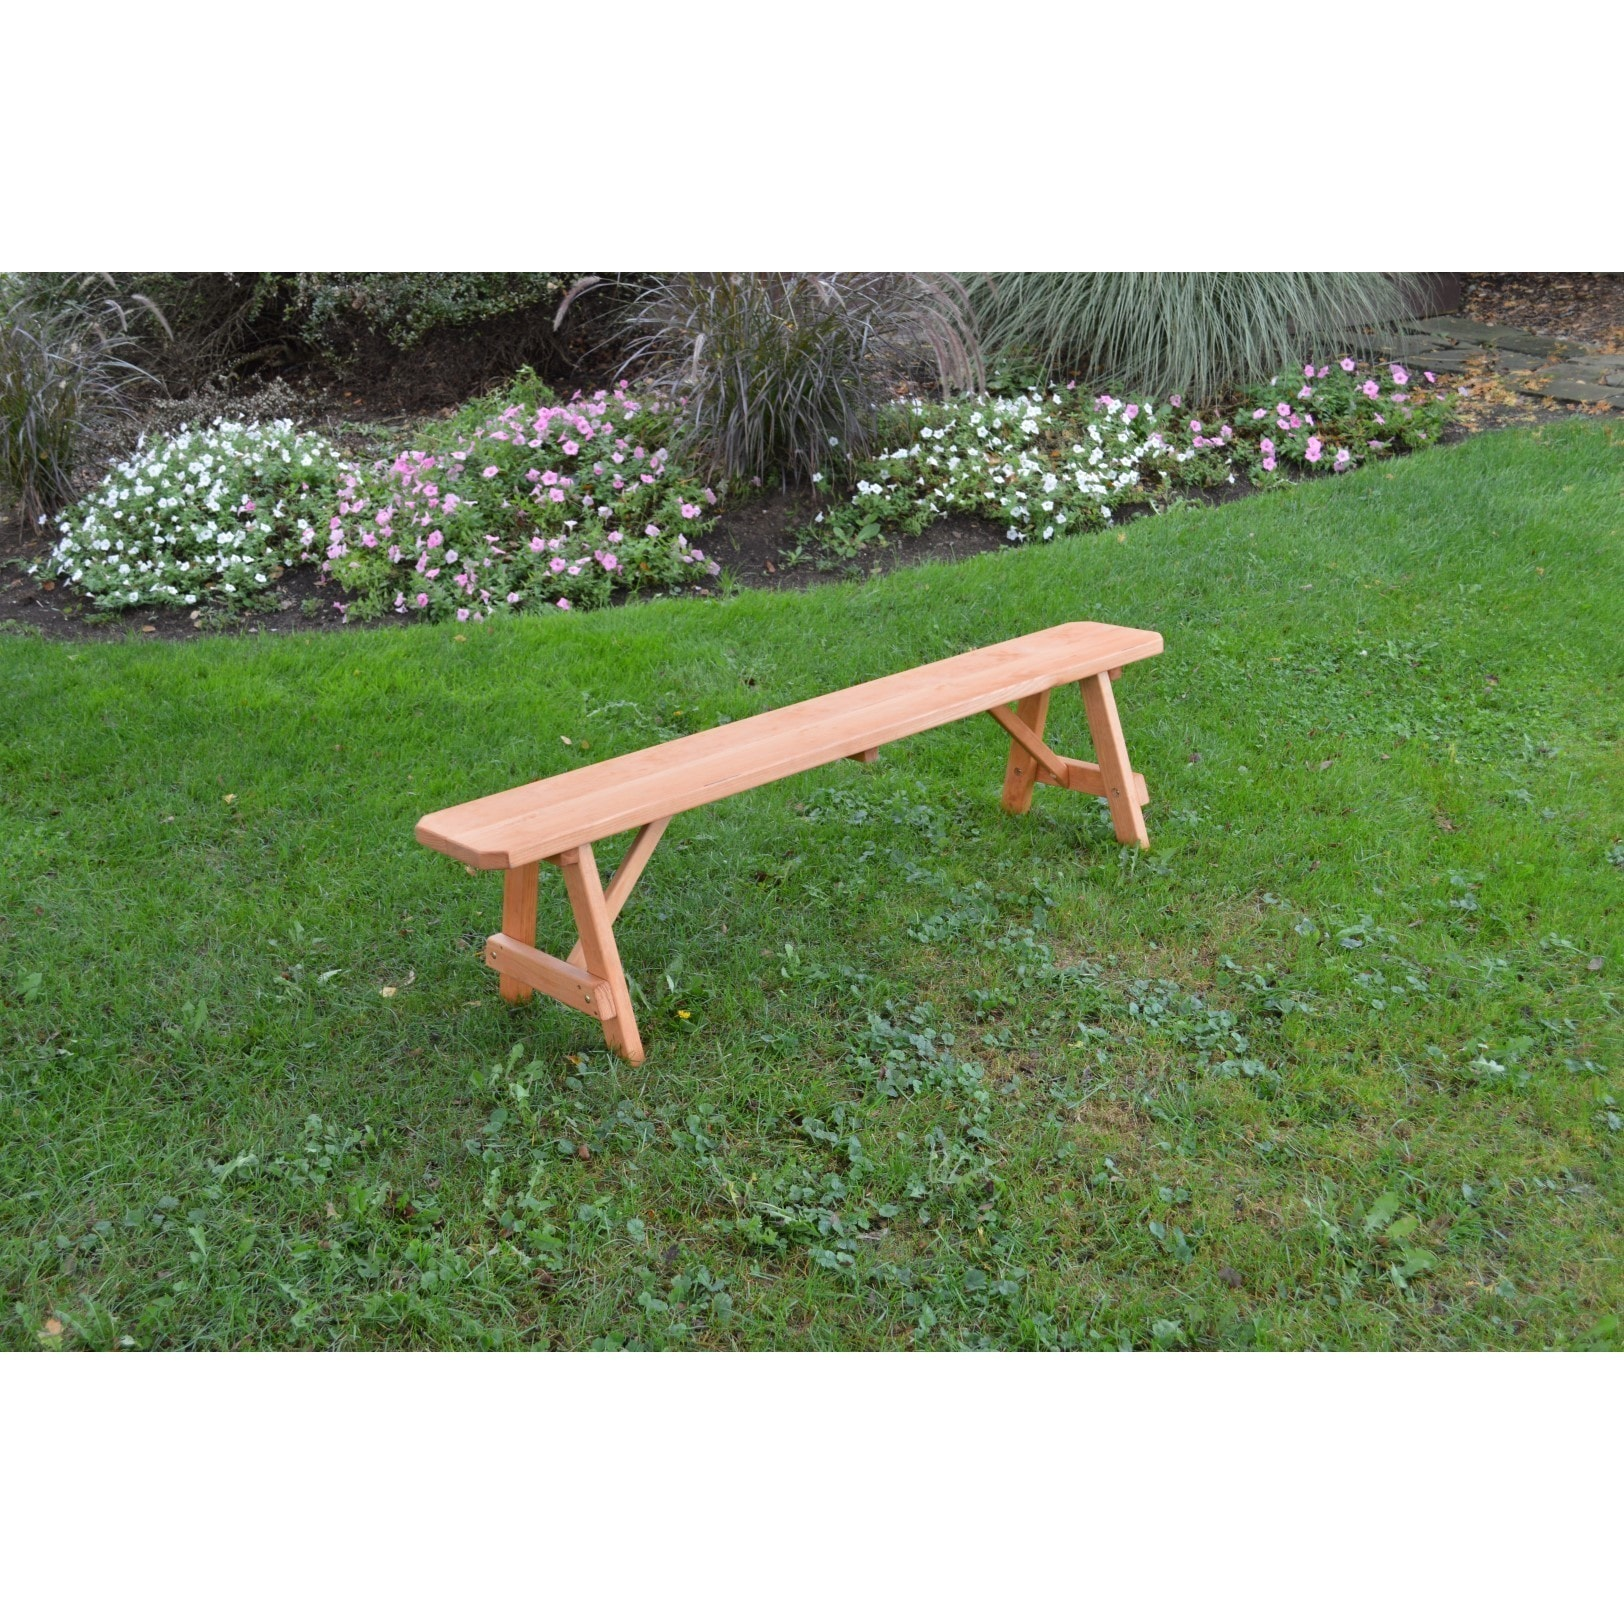 Swell Traditional Picnic Bench Cedar Stain Pressure Treated Pine Spiritservingveterans Wood Chair Design Ideas Spiritservingveteransorg